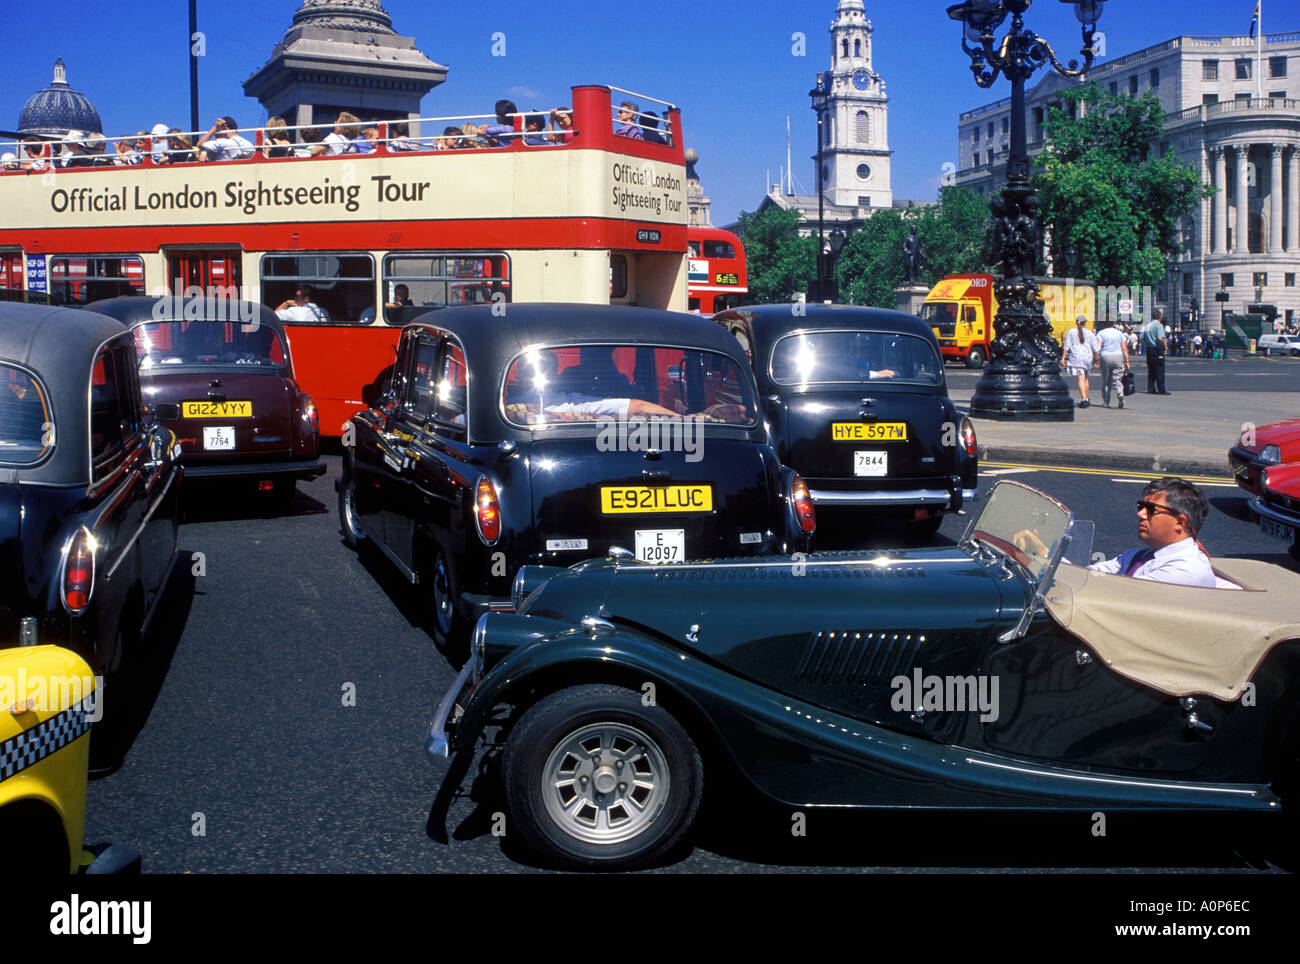 TRAFFIC JAM AT TRAFALGAR SQUARE LONDON - Stock Image